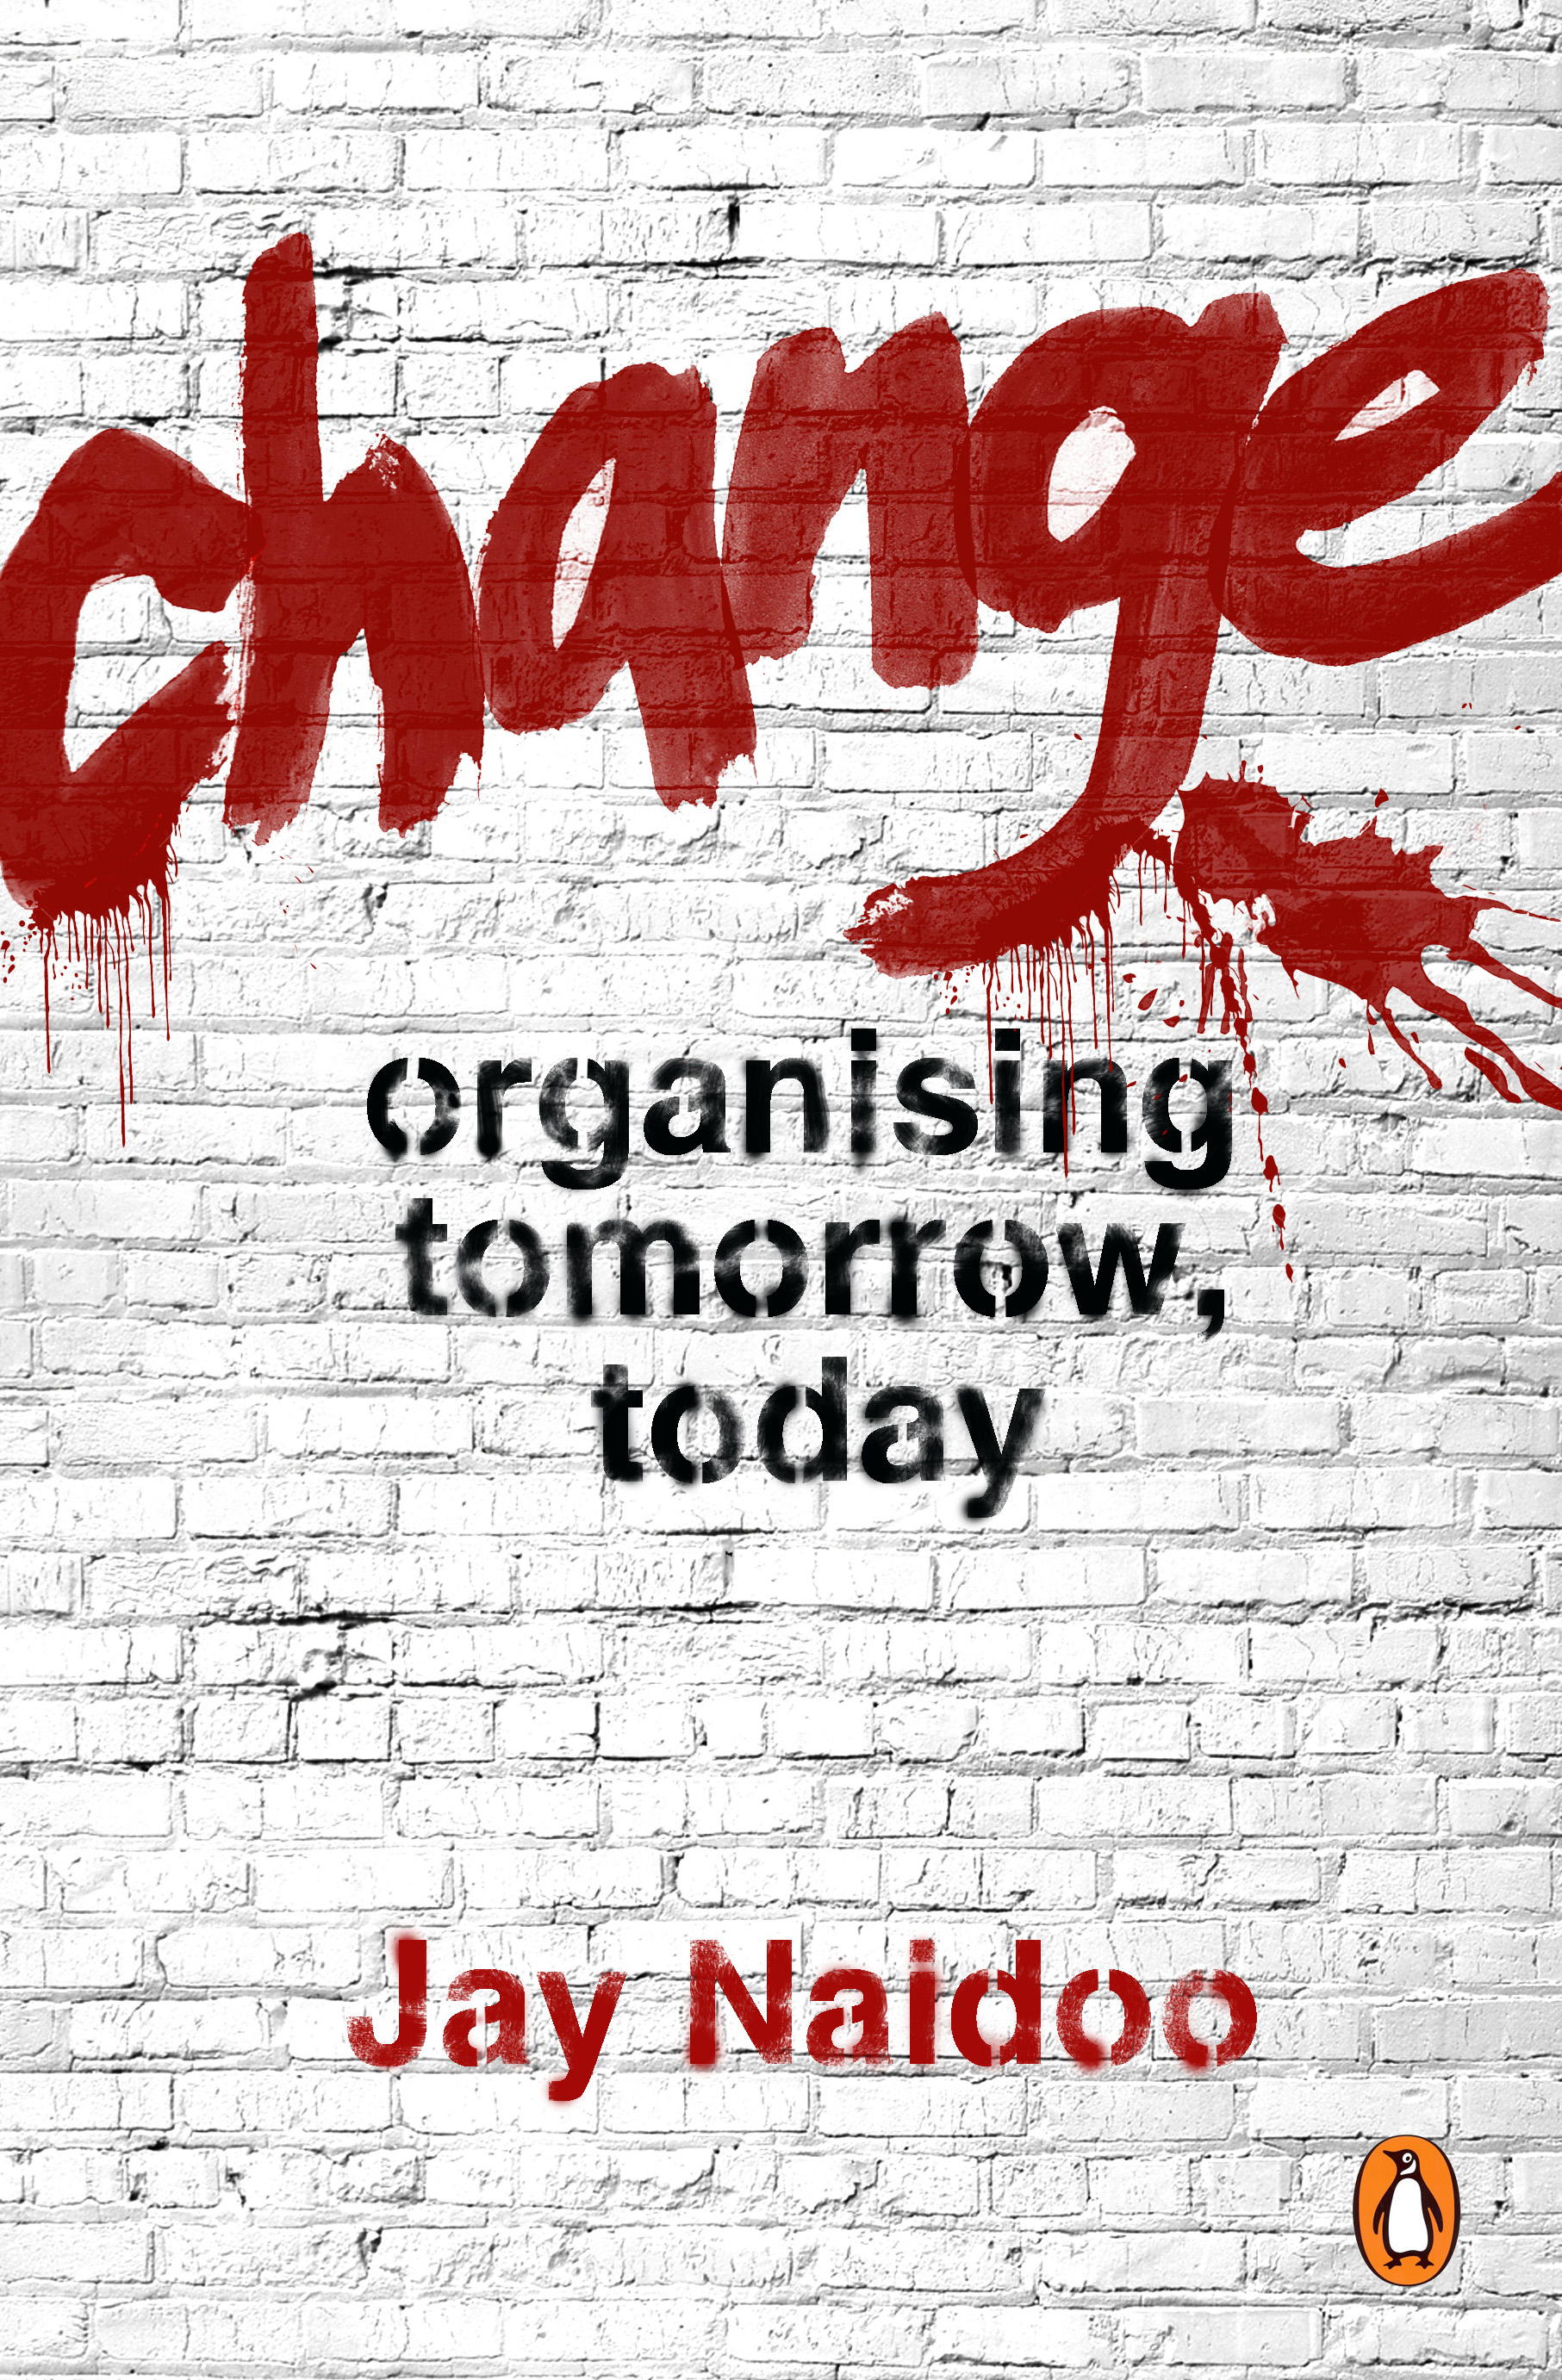 Book Review – Change: Organising Tomorrow, Today